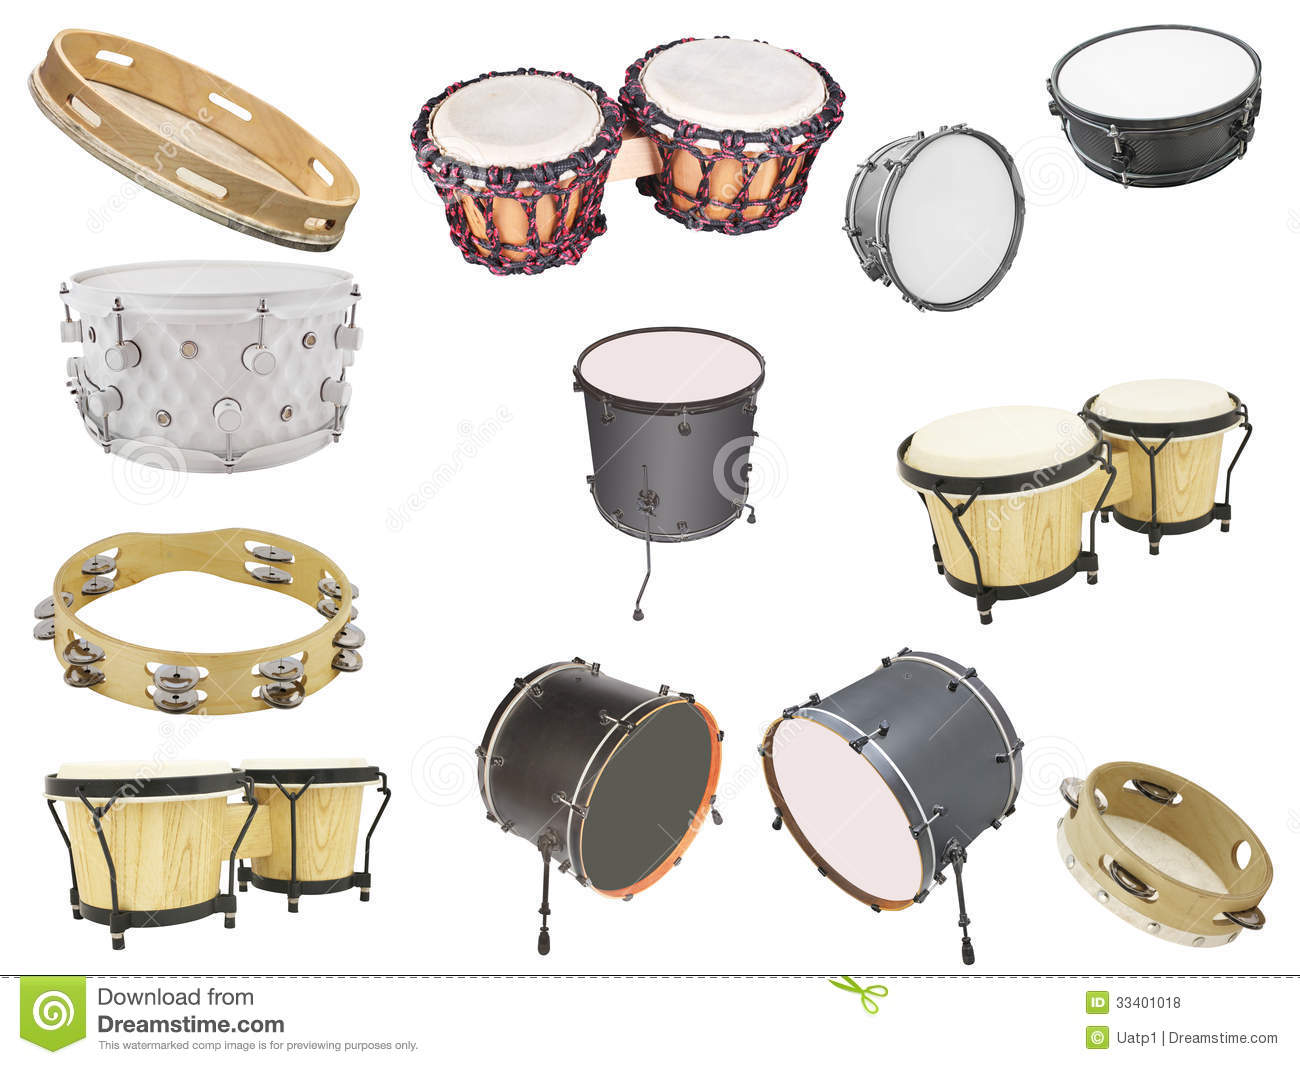 10 instrumentos de percussion yahoo dating 7